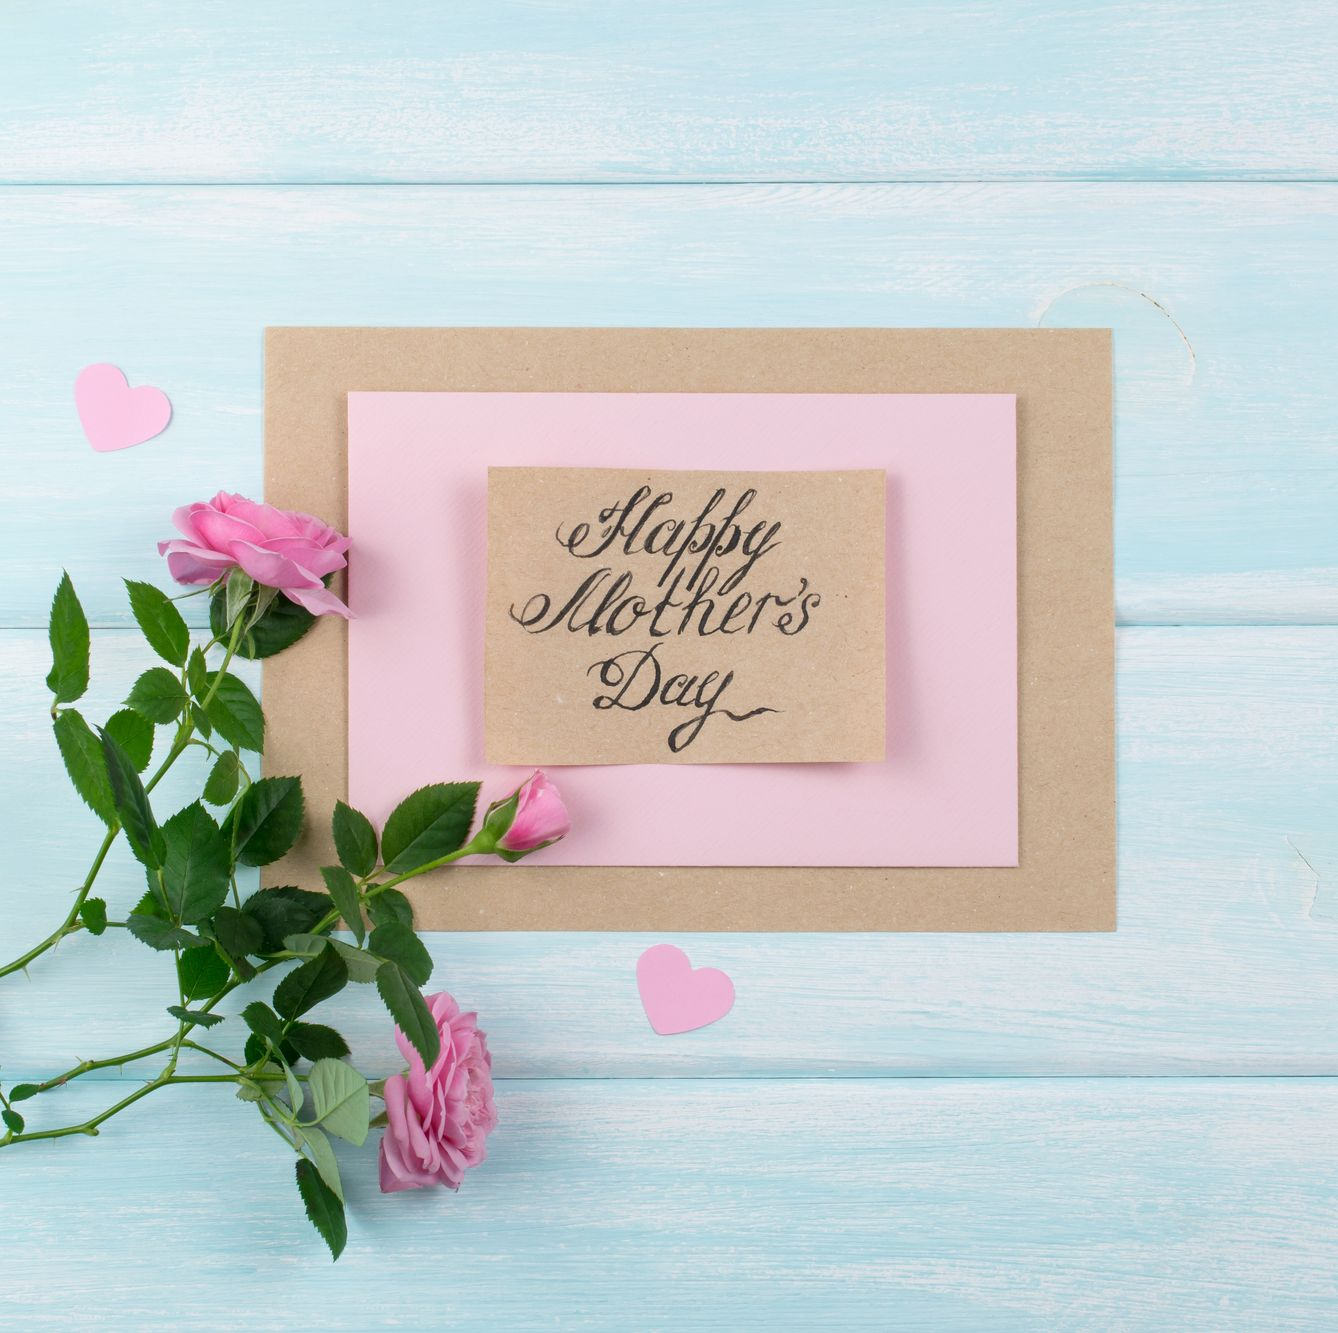 Greetings Quotes For Mothers Day: 30 Cute Free Printable Mothers Day Cards